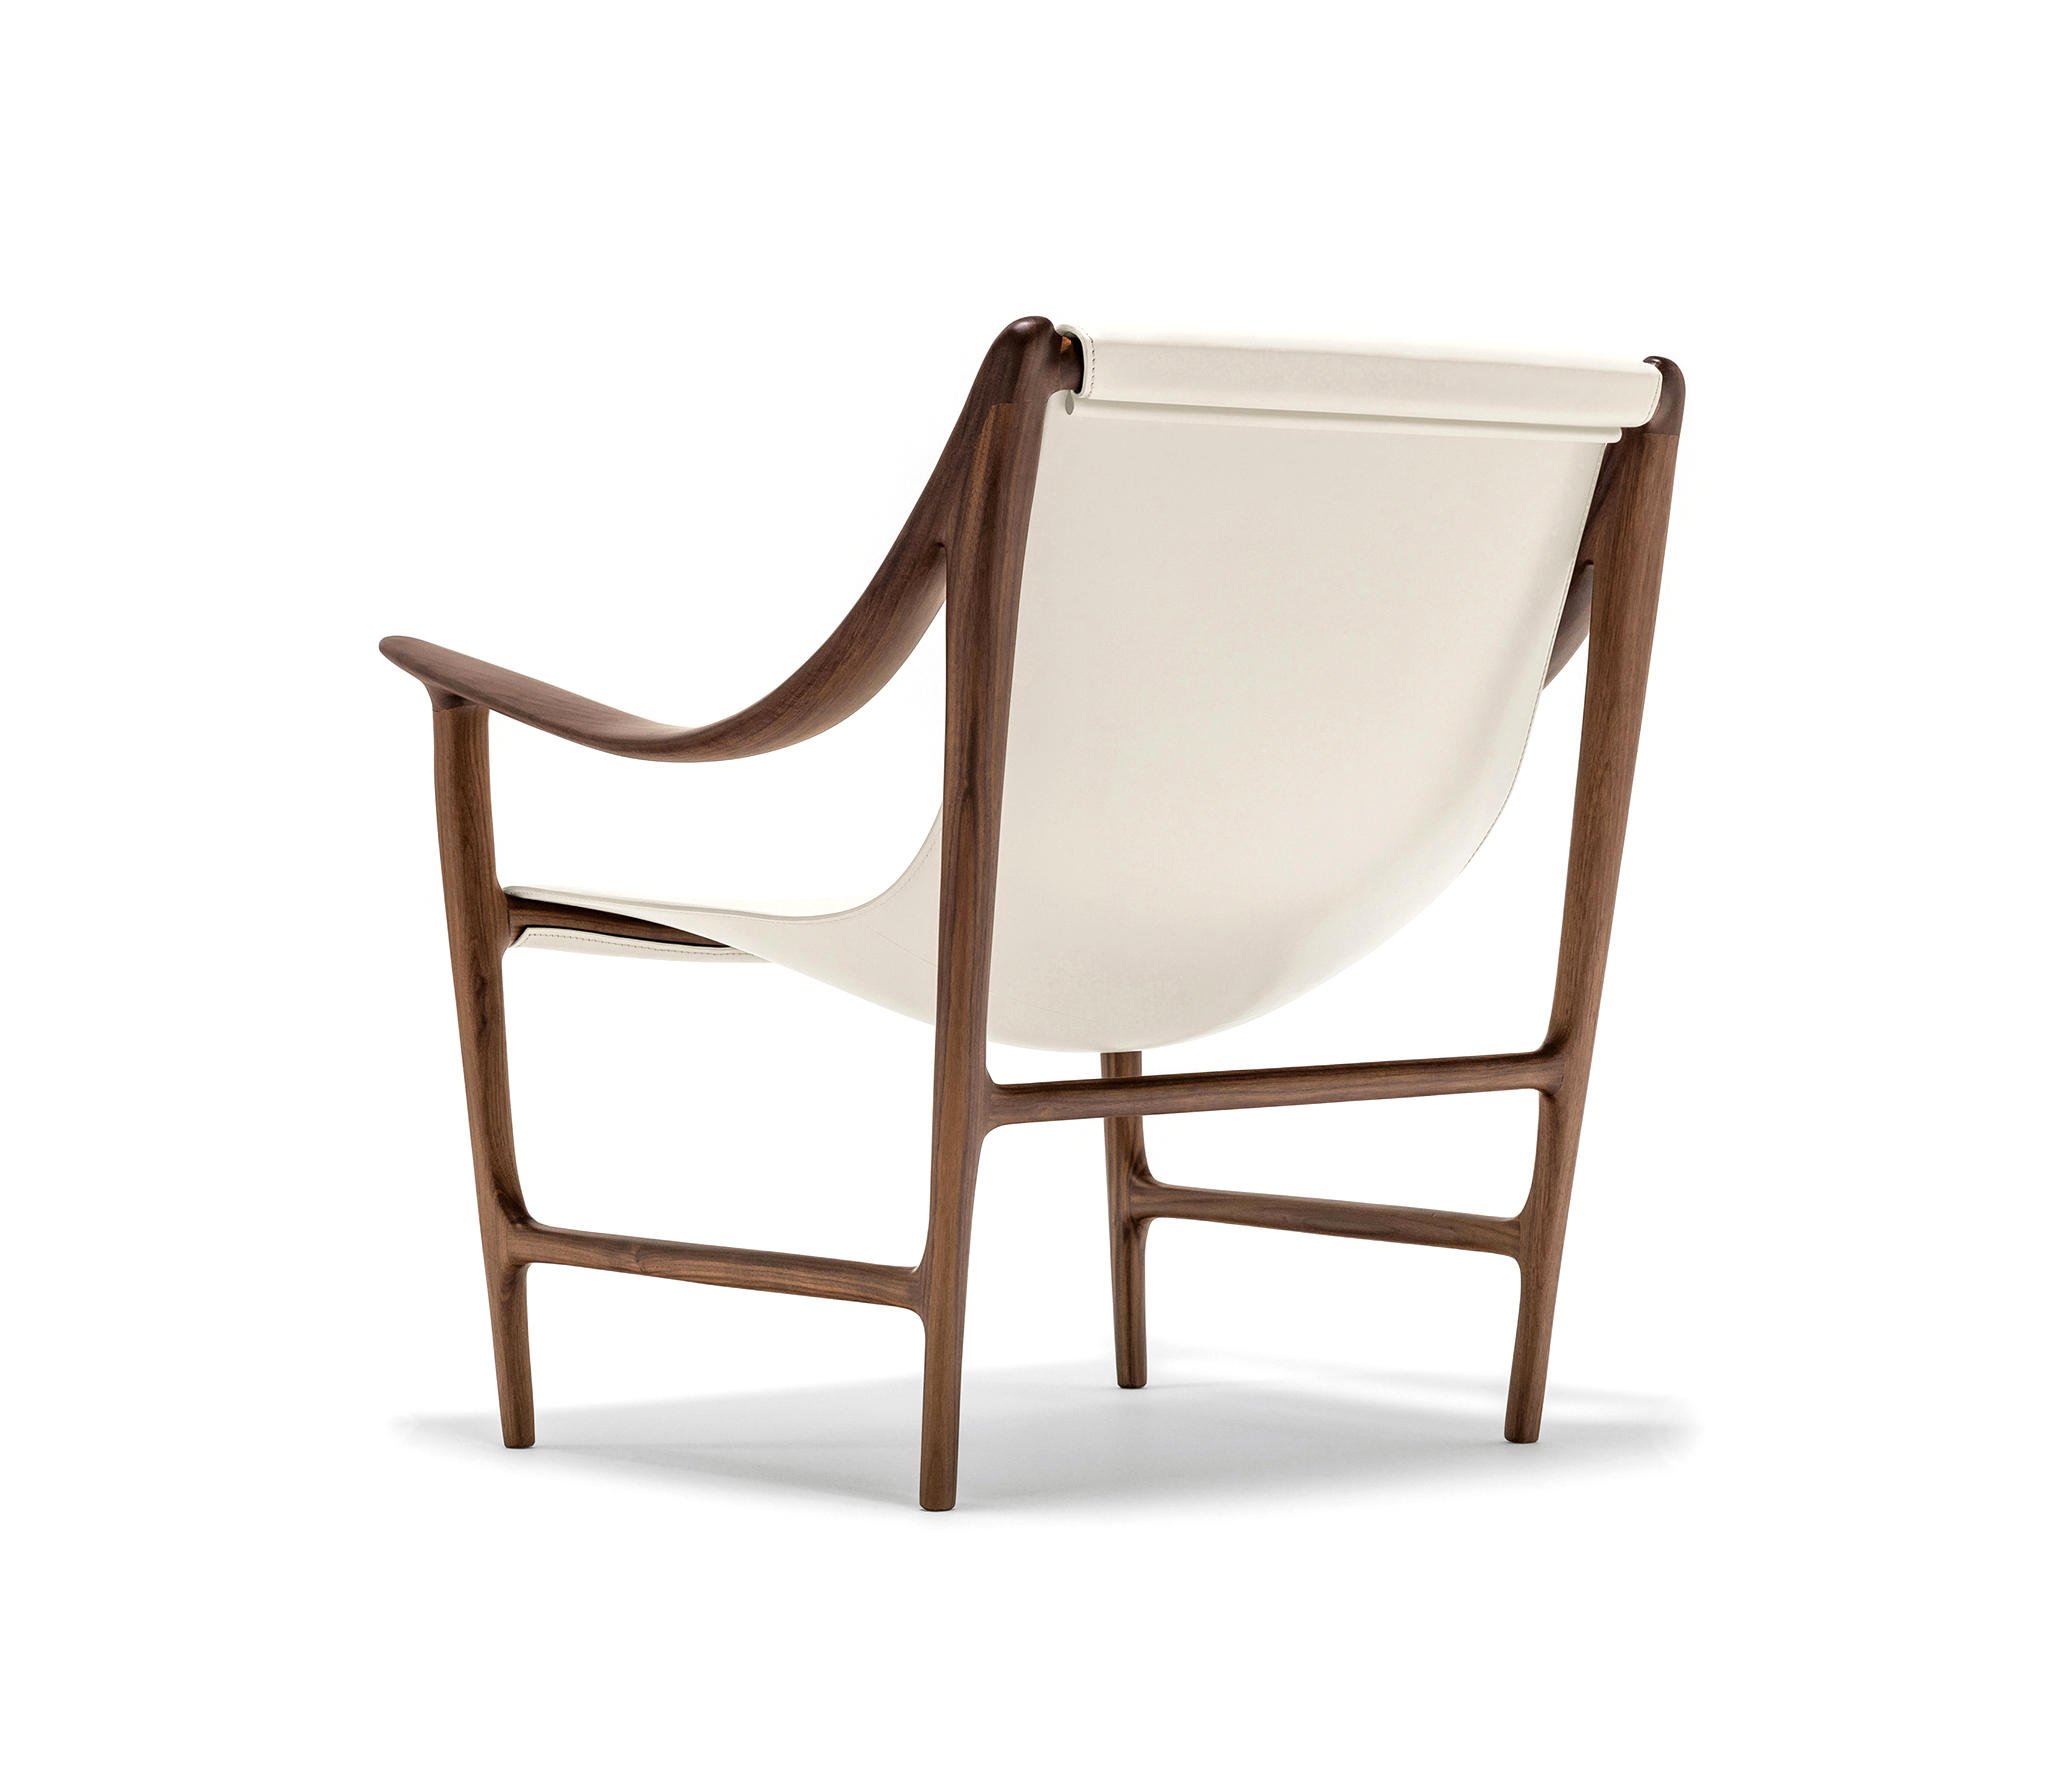 swing chair revit family retro kitchen table and chairs for sale armchair armchairs from giorgetti architonic by